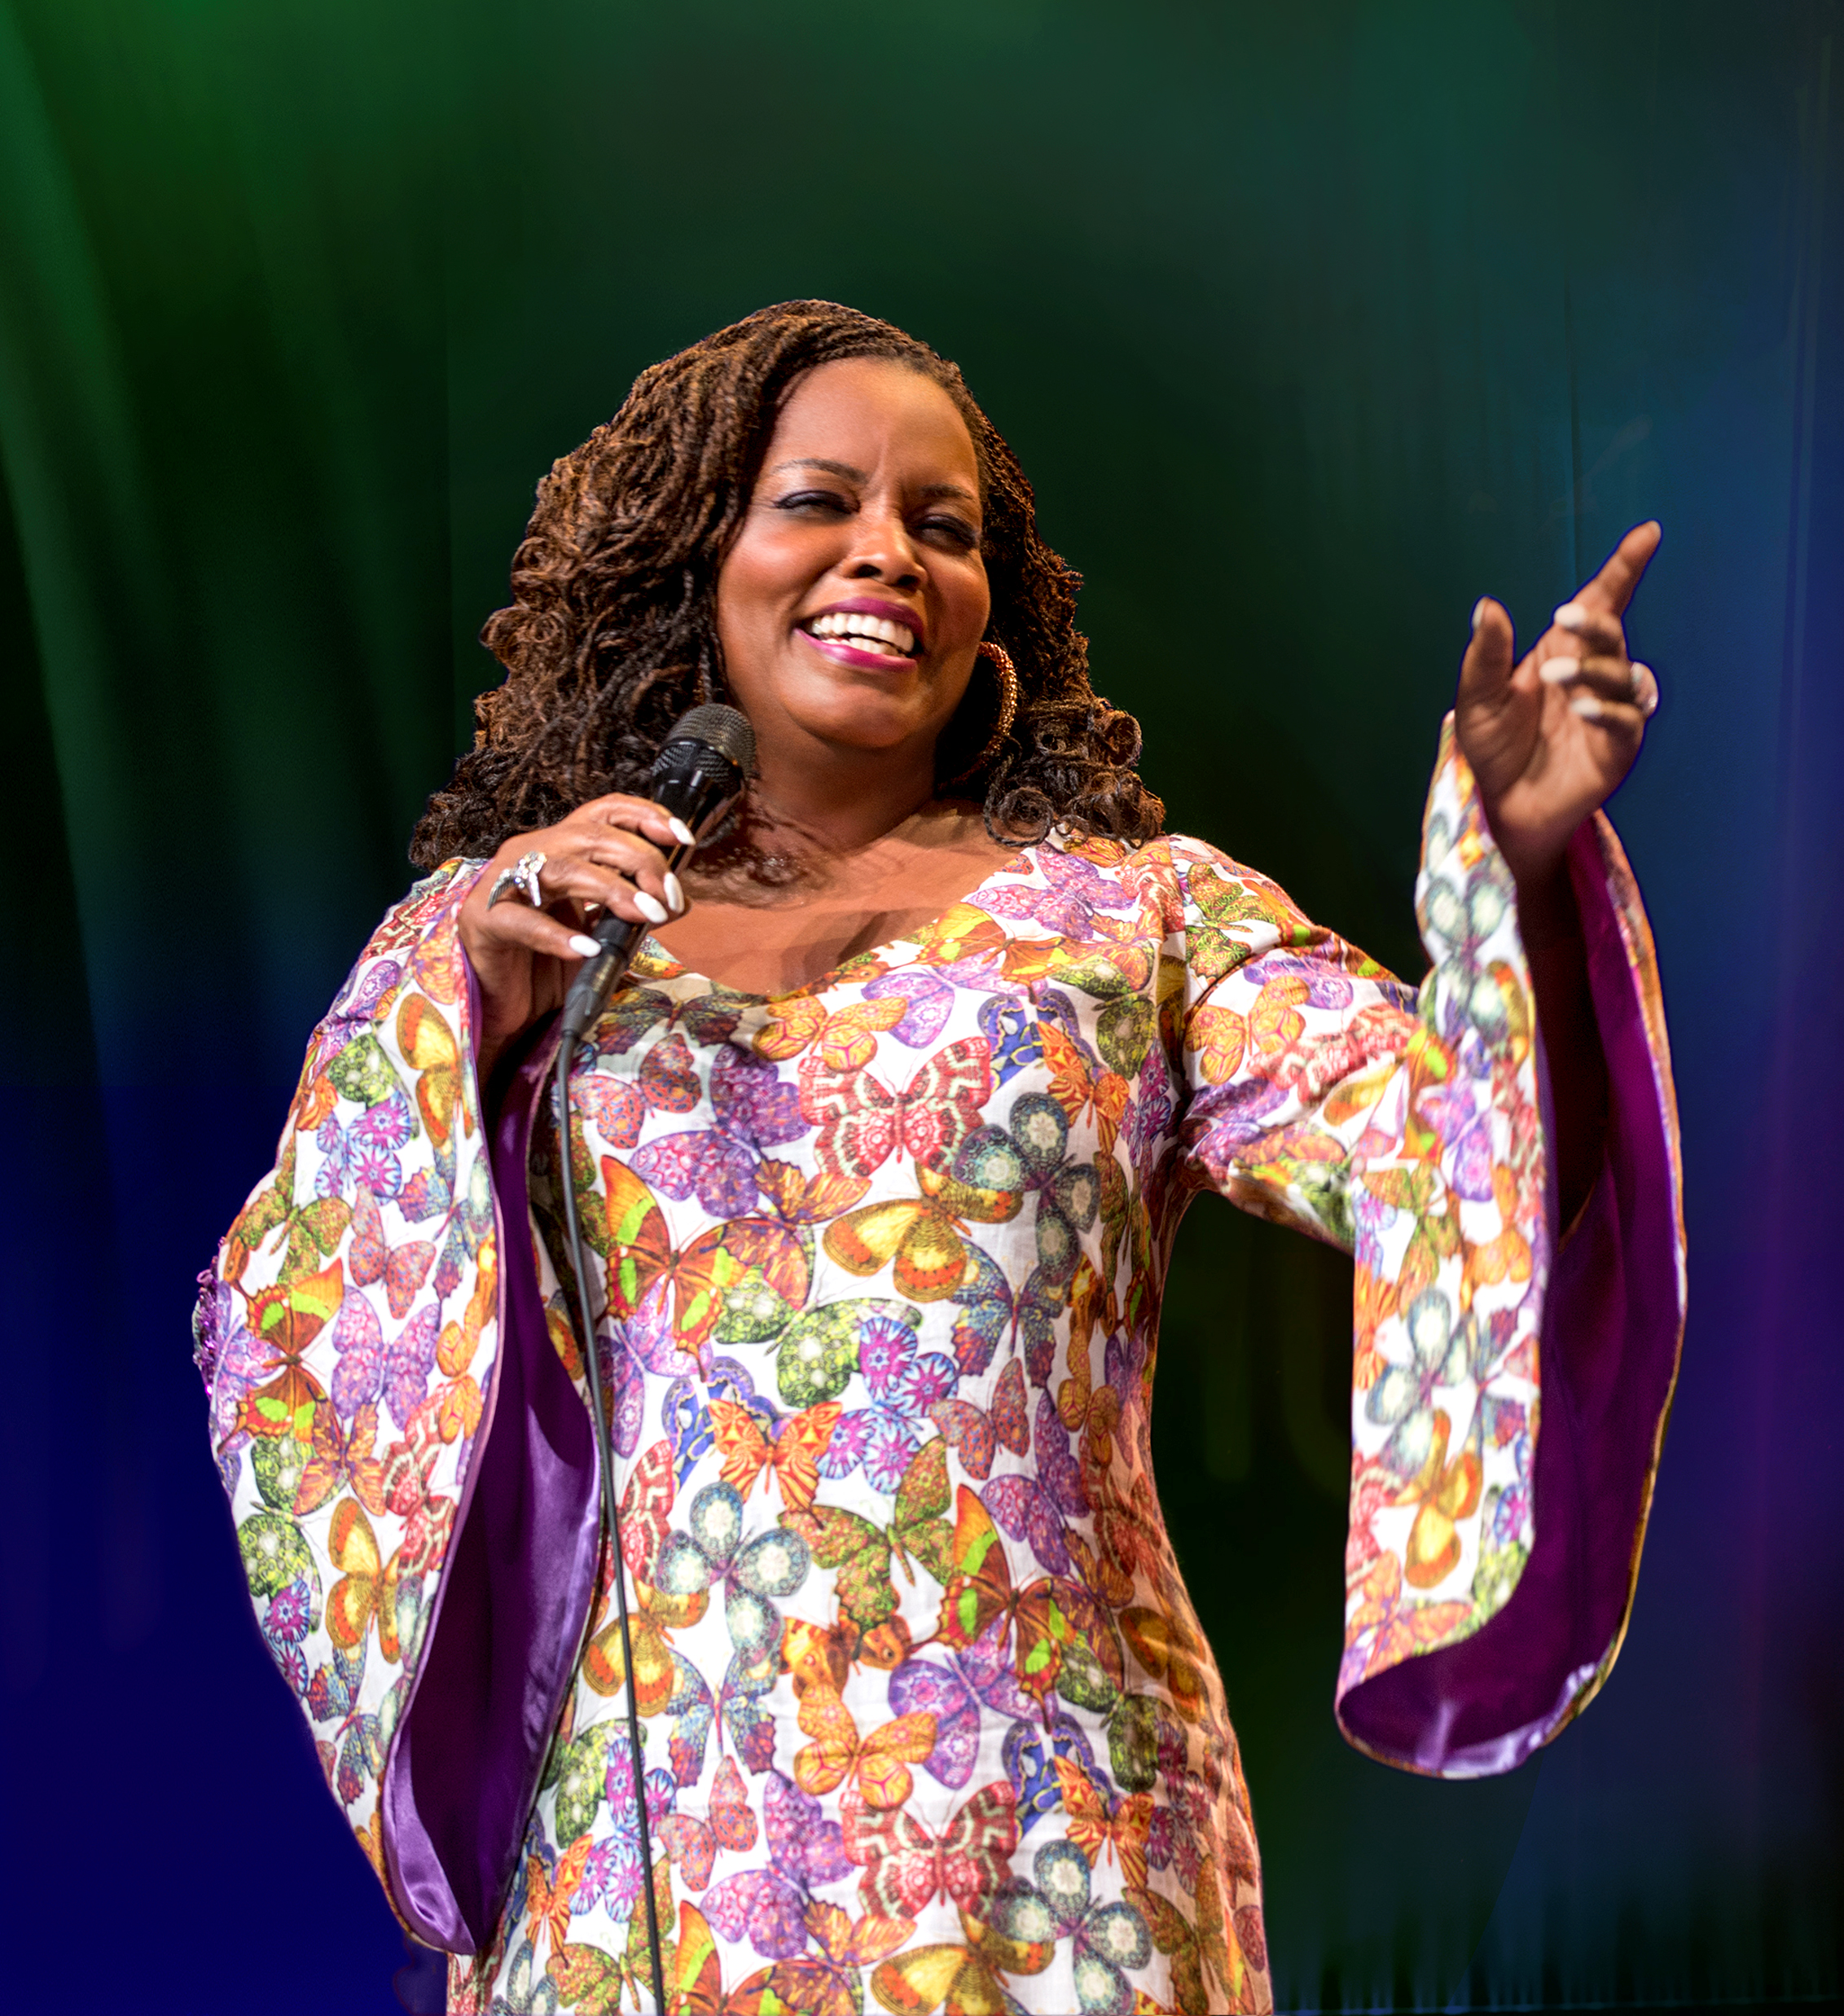 Jazz Coalition supporter Dianne Reeves